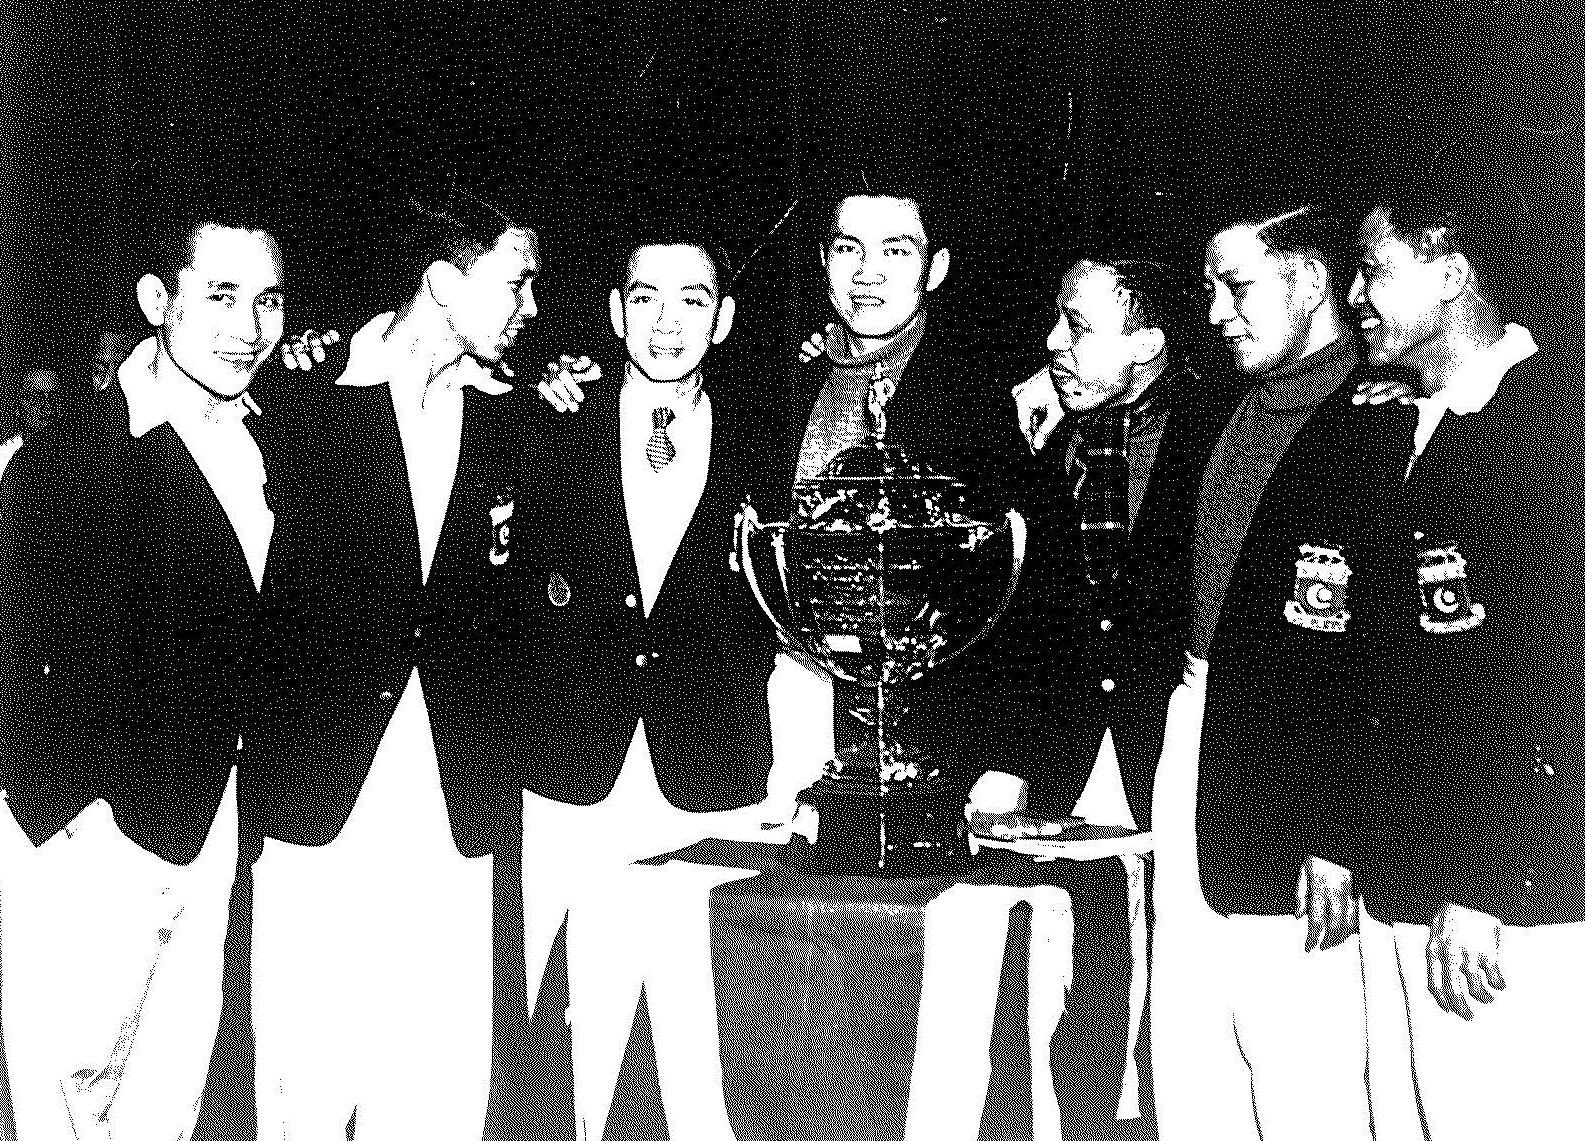 Thomas cup 1st winners malaya with trophy - preston, england feb 25-26, 1949 - malaya bt denmark 8-1. ong poh lim is at far left - ap picture